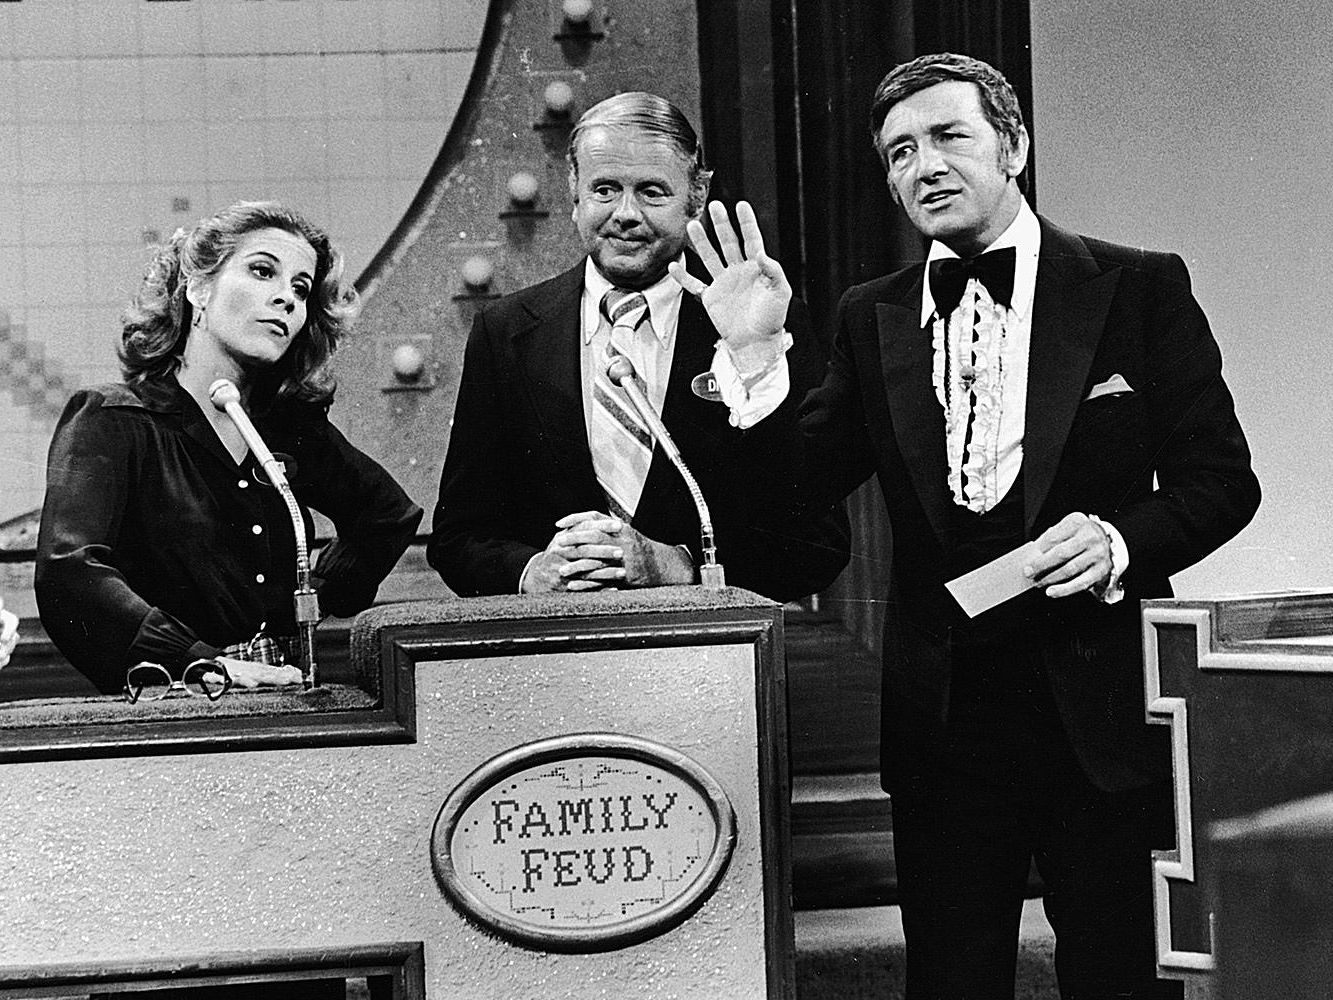 Family Feud' Hosts in Chronological Order